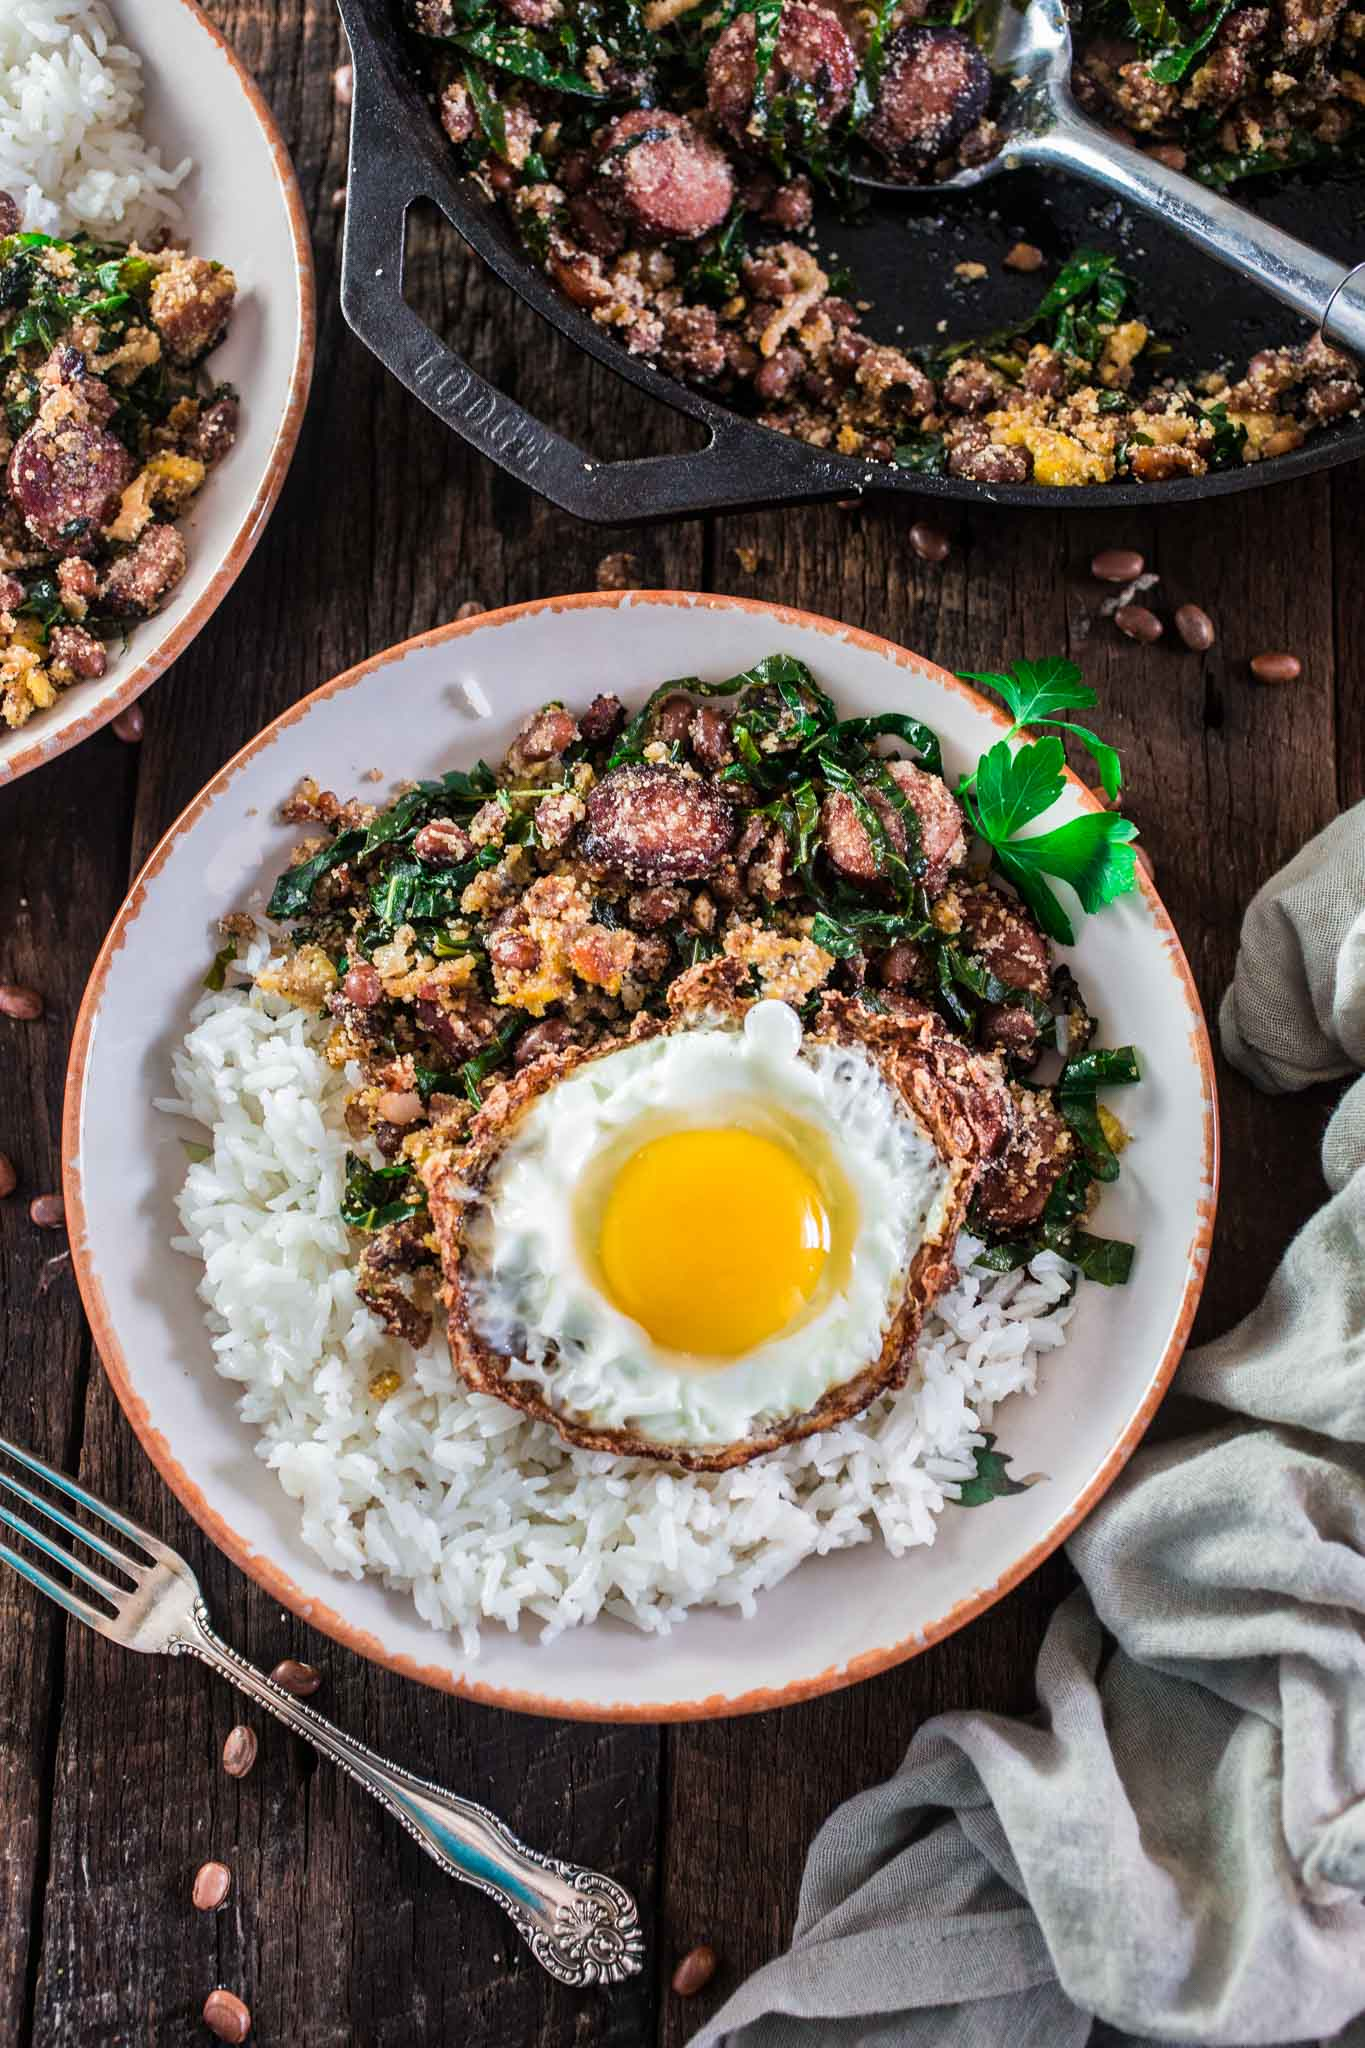 Feijão Tropeiro (Brazilian Beans with Sausage and Collard Greens) | www.oliviascuisine.com | If you like Brazilian food, this one is for you: Feijão Tropeiro. A traditional dish from Minas Gerais, made with beans, bacon, sausage, collard greens, eggs and manioc flour.